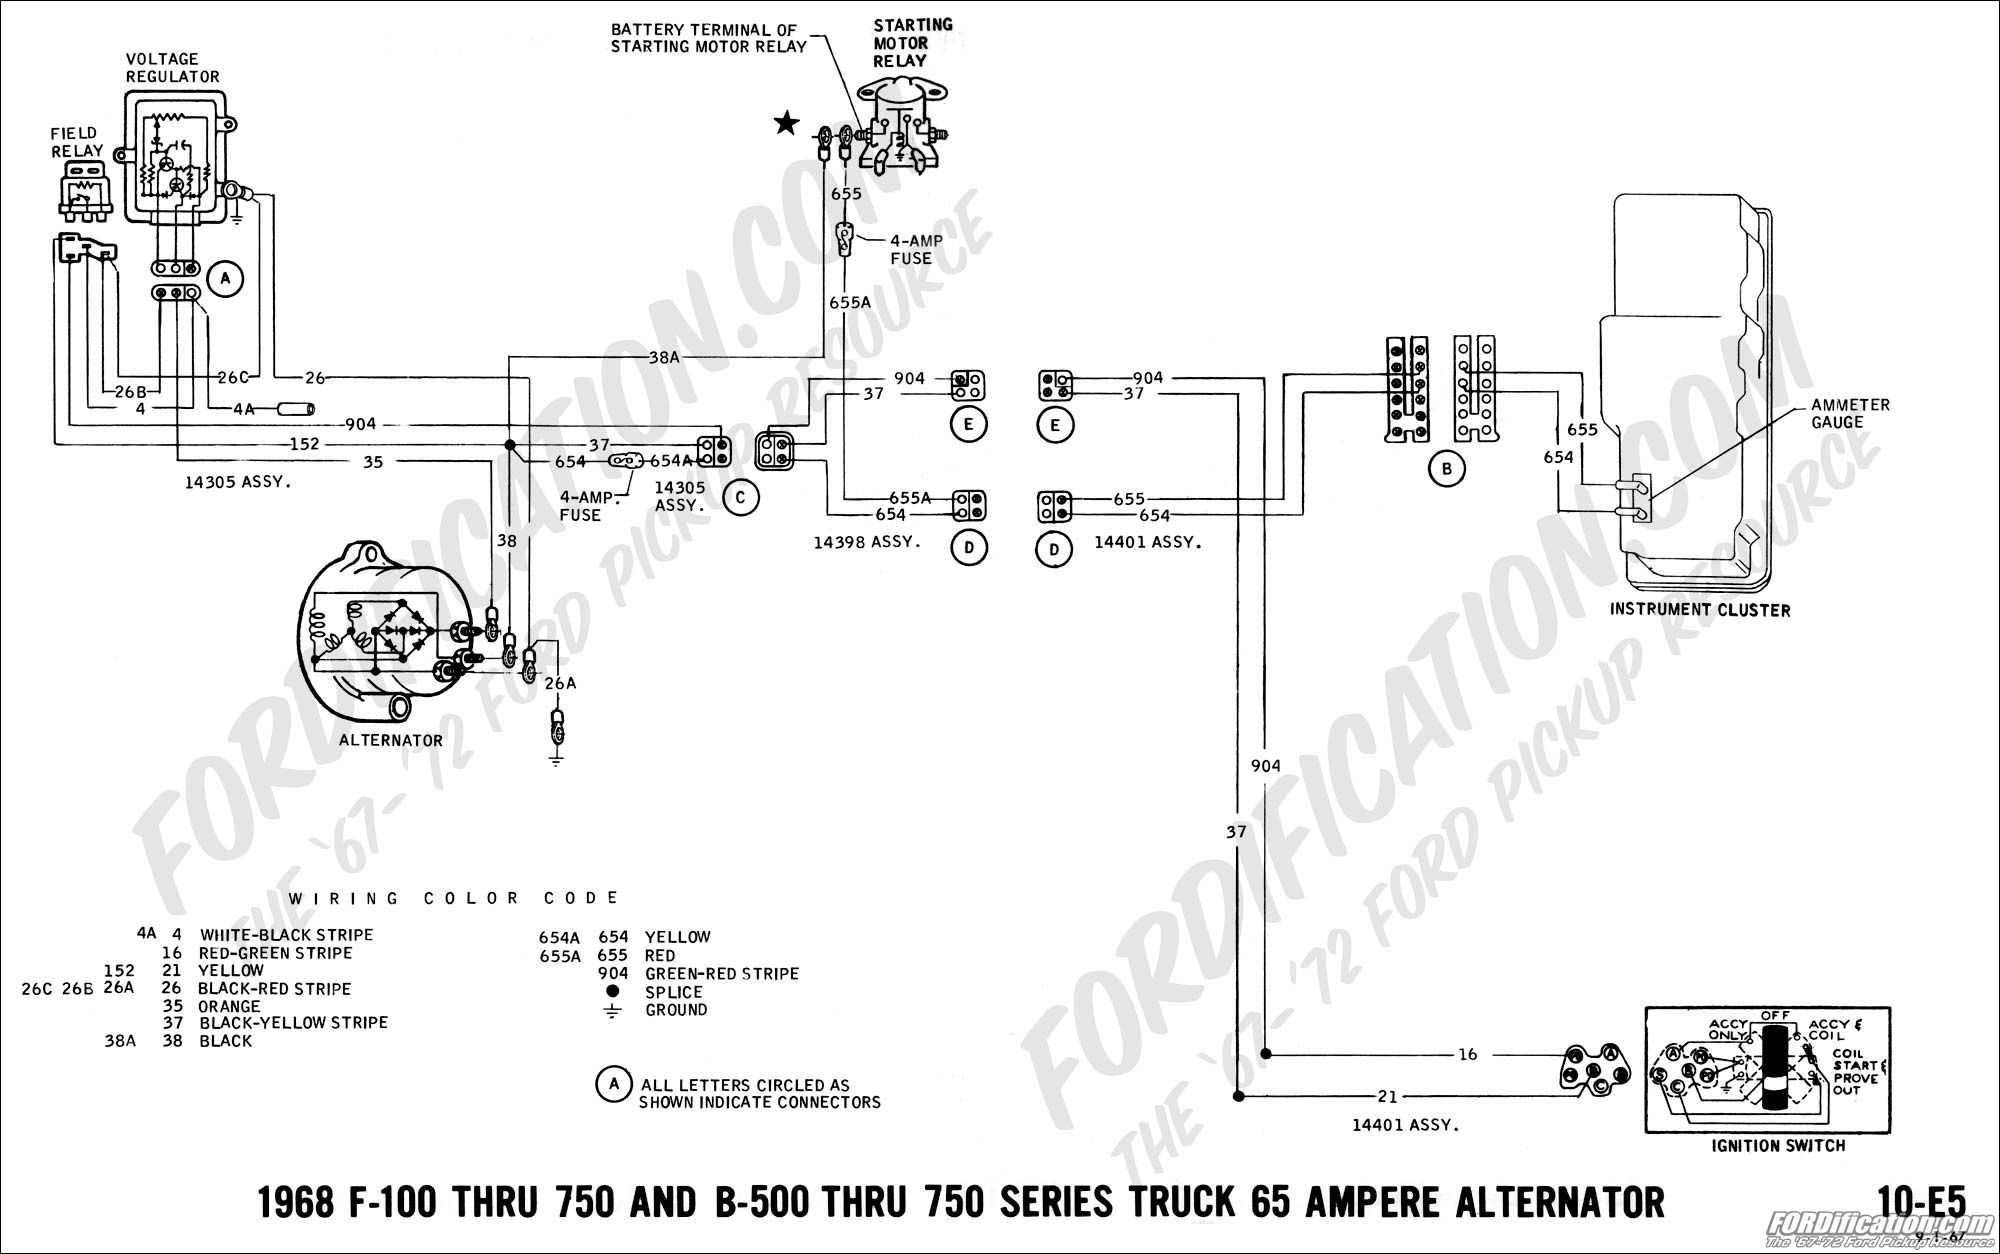 Ford Voltage Regulator To Generator Wiring Diagram Great Kohler Starter F150 Detailed Diagrams Rh 31 Cifera De